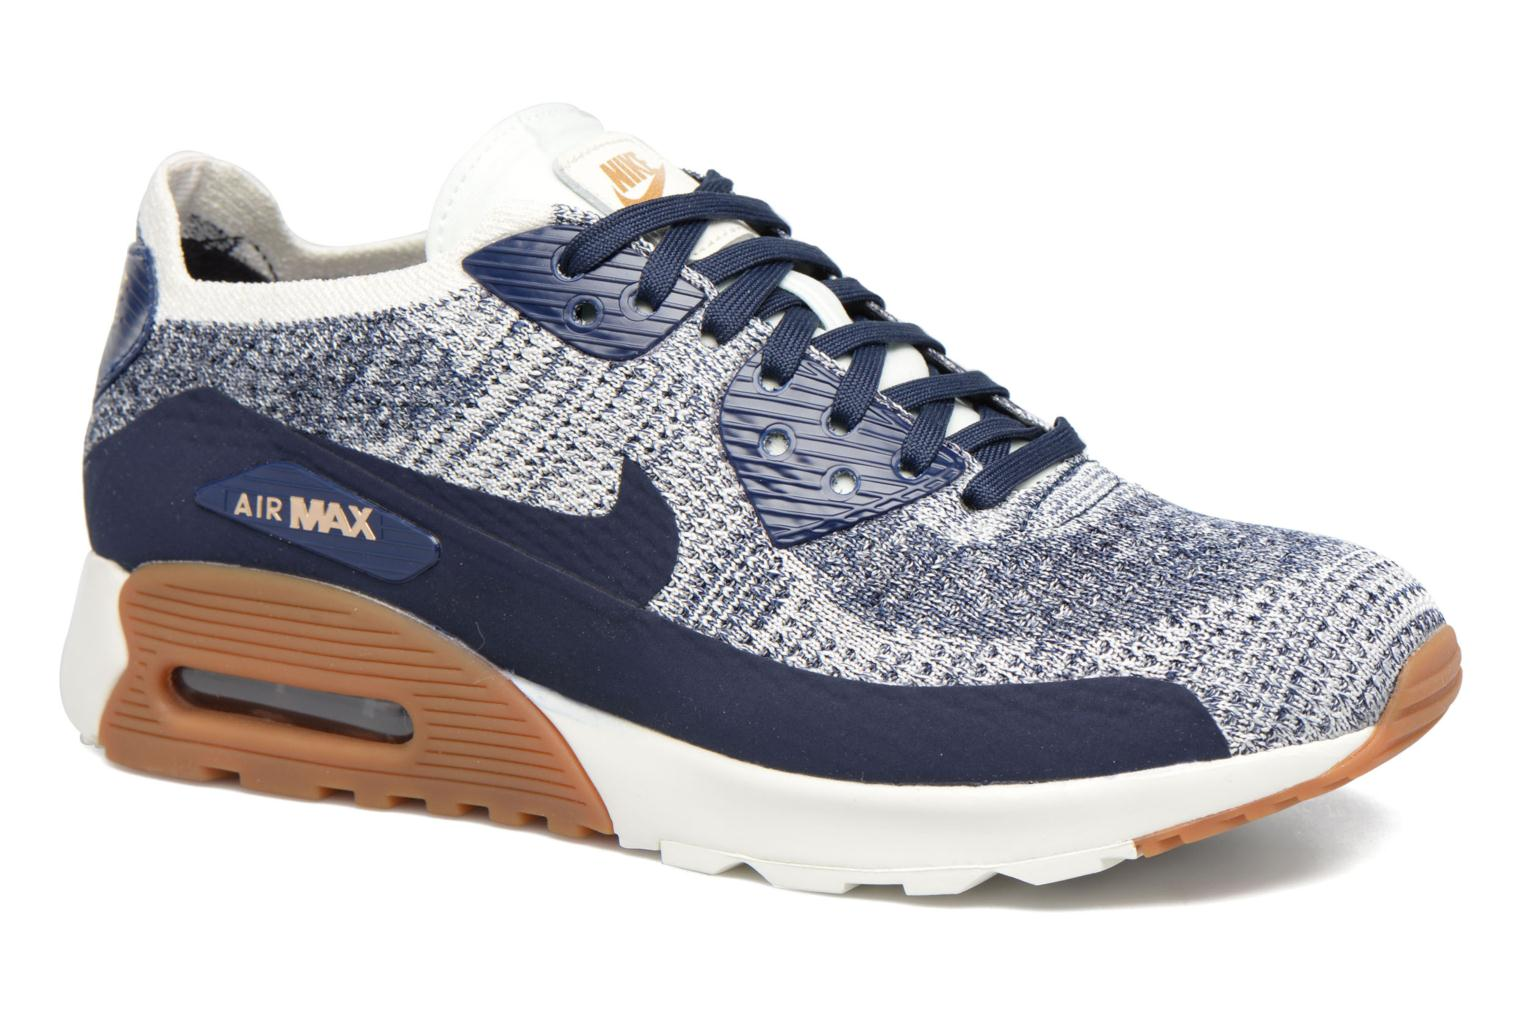 W Air Max 90 Ultra 2.0 Flyknit College Navy/College Navy-Gum Med Brown